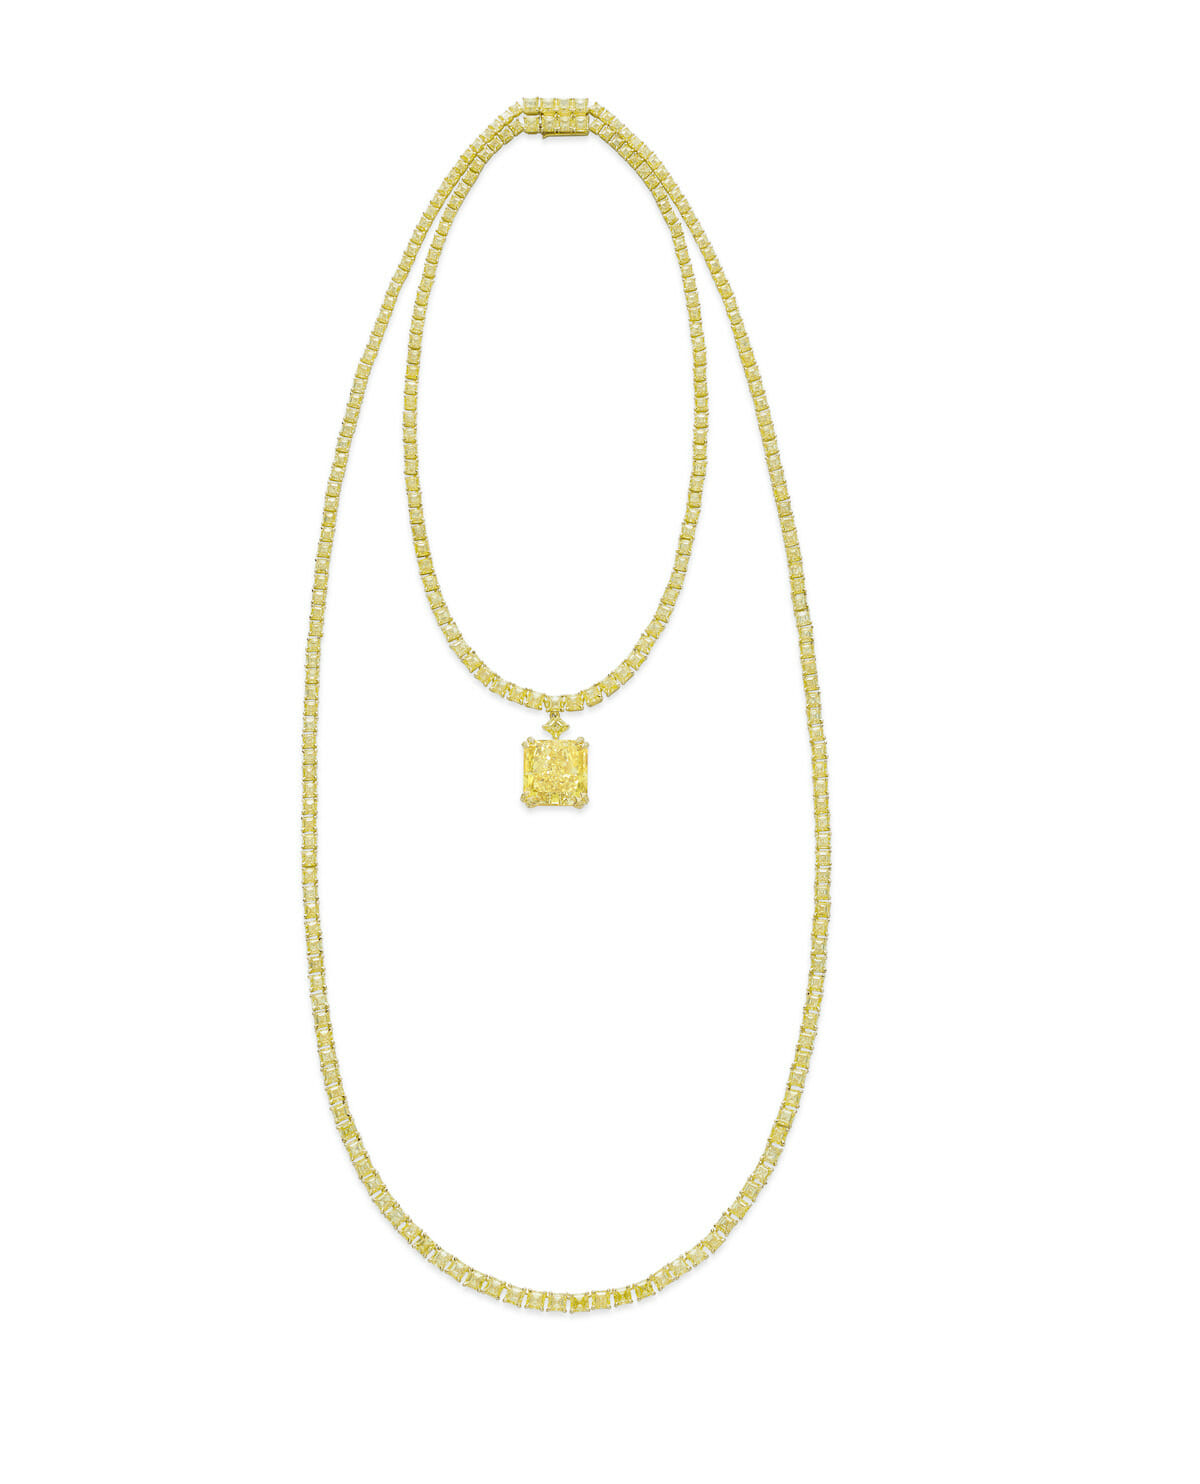 Chopard Red Carpet Collection Necklace